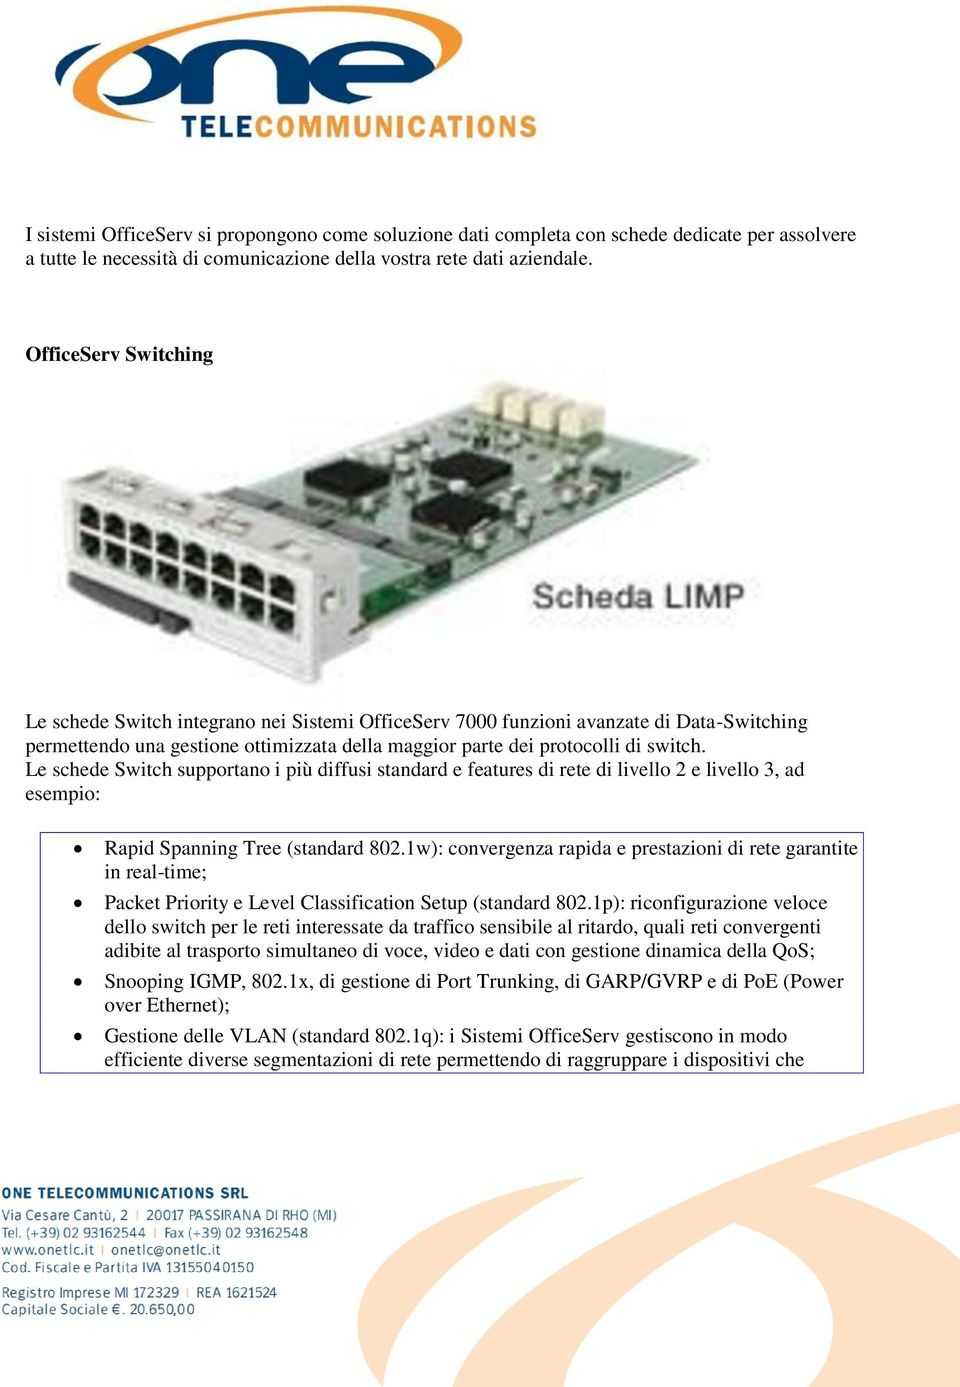 Le schede Switch supportano i più diffusi standard e features di rete di livello 2 e livello 3, ad esempio: Rapid Spanning Tree (standard 802.